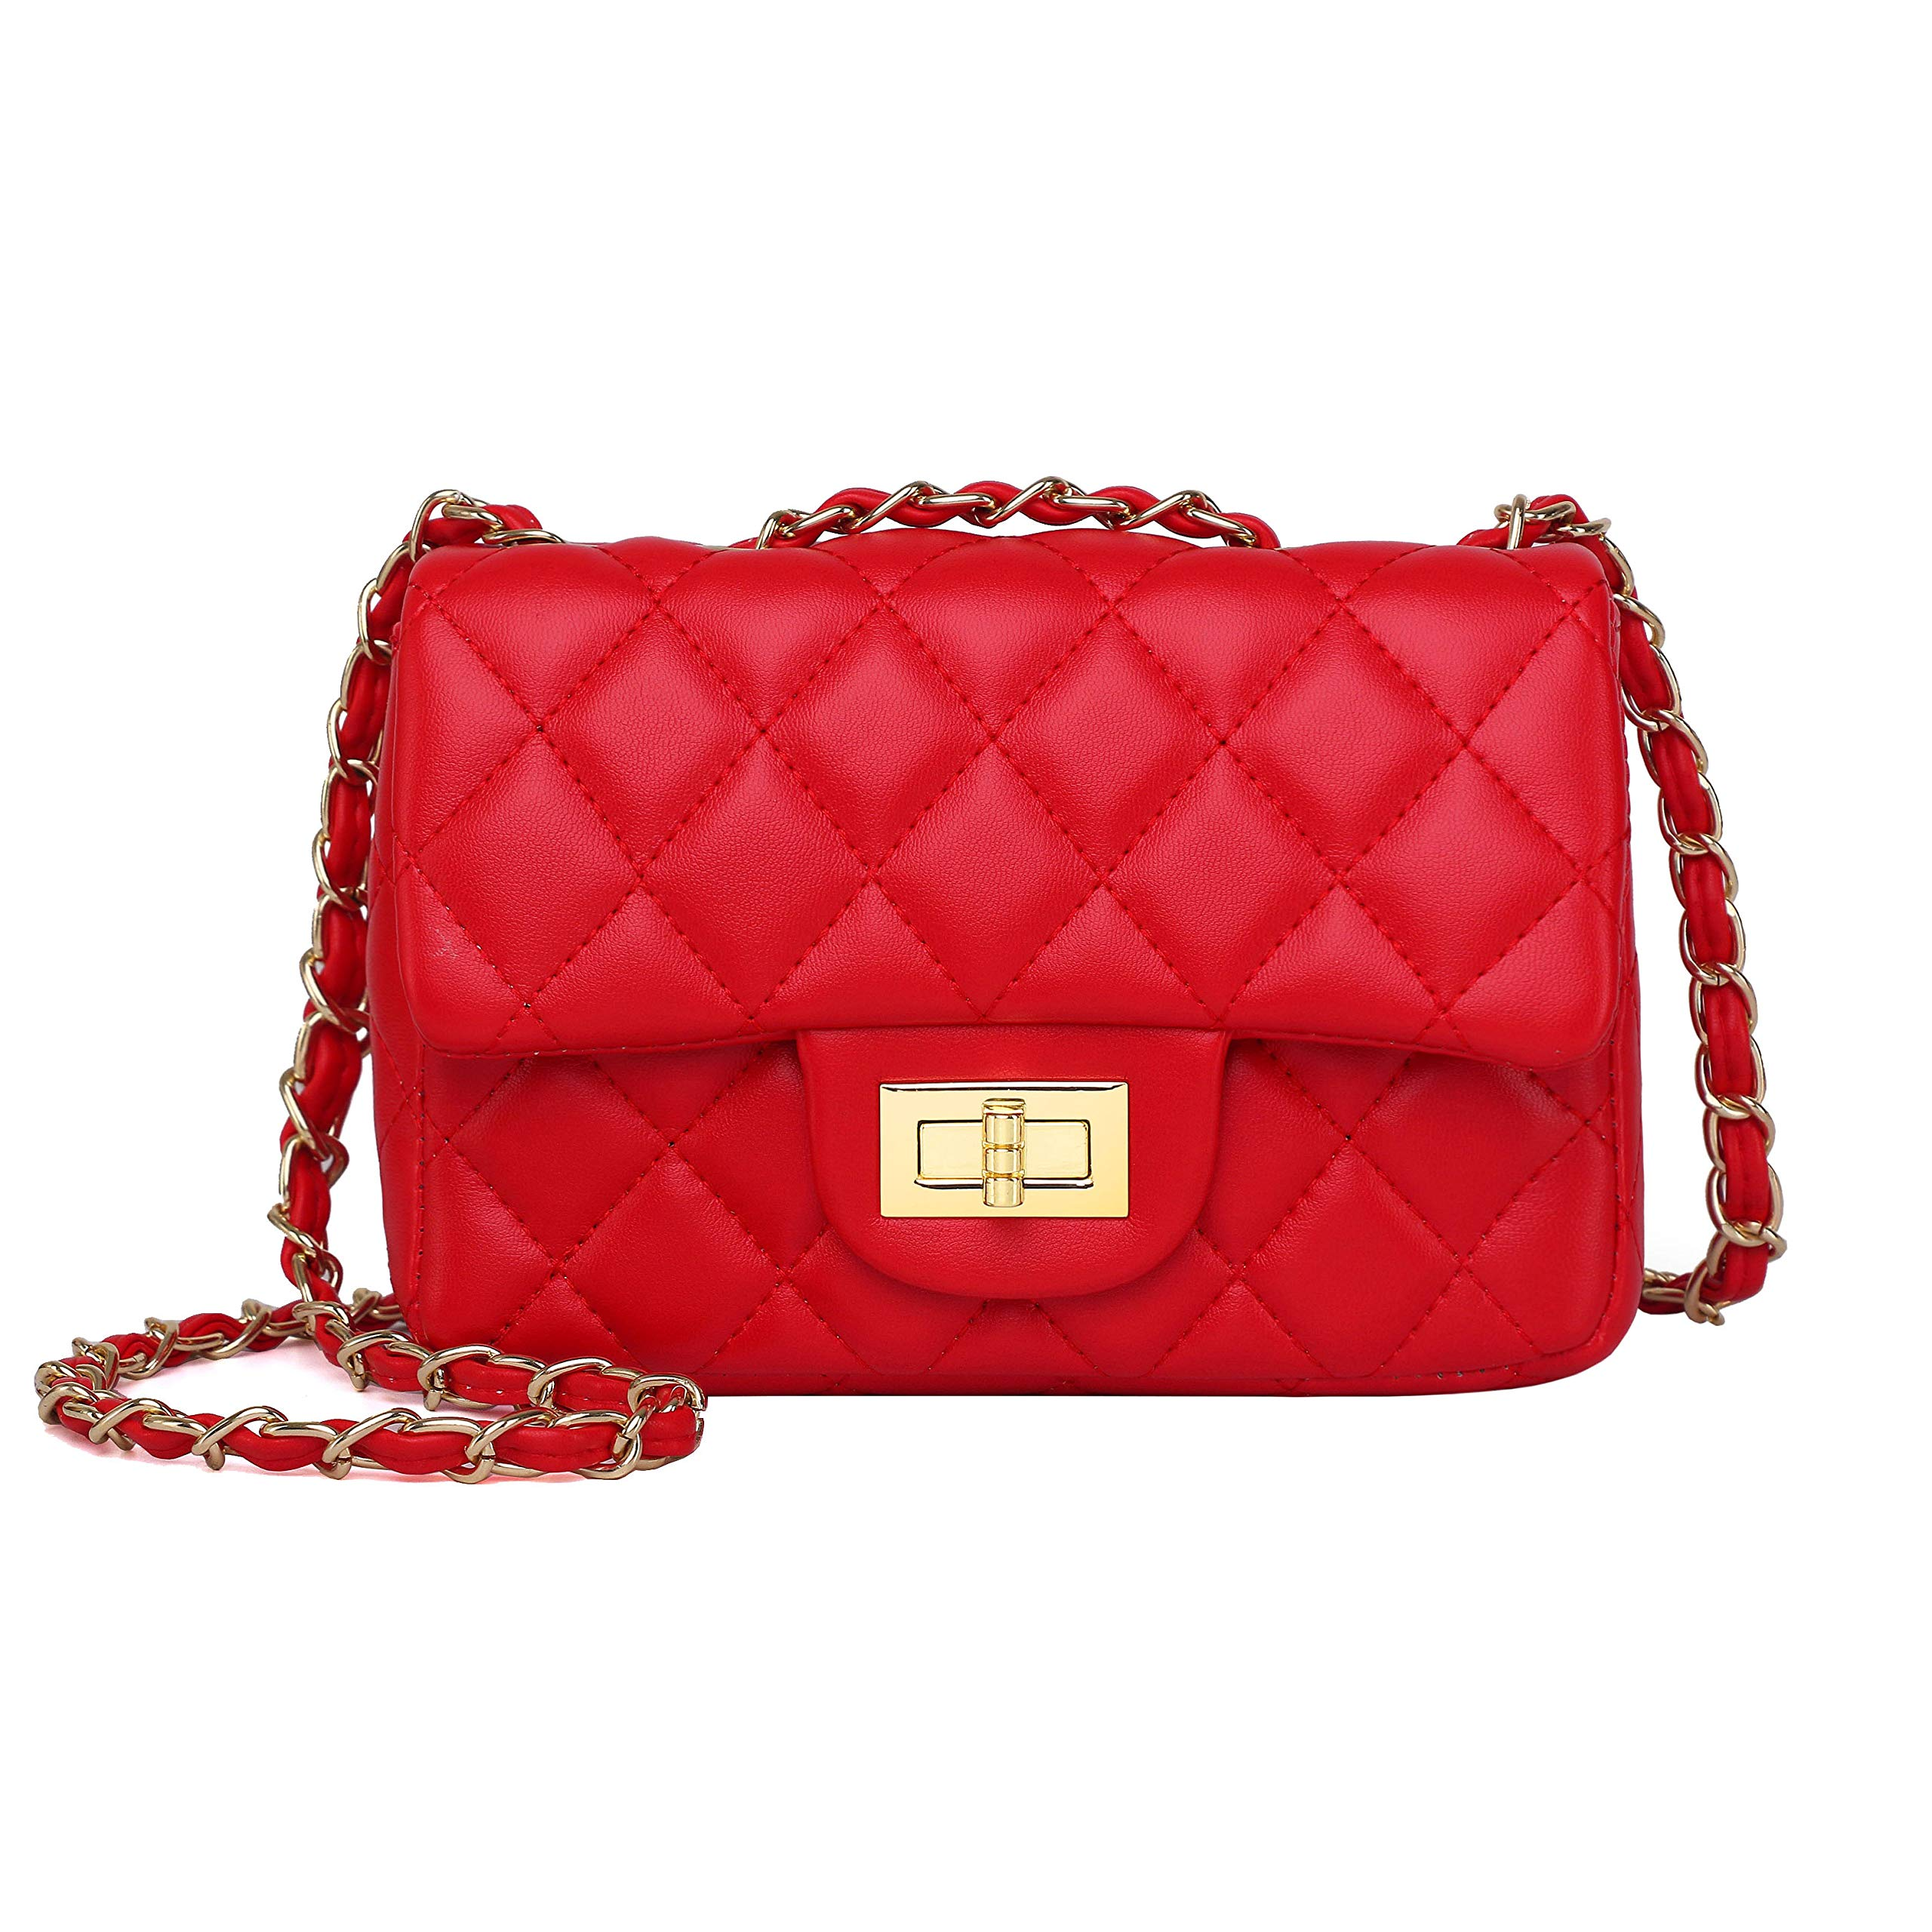 Volcanic Rock Women's Quilted PU Leather Cross-body Bag Girls Purse & Handbags Chain Small Messenger Bag(919 Red) by Volcanic Rock (Image #1)